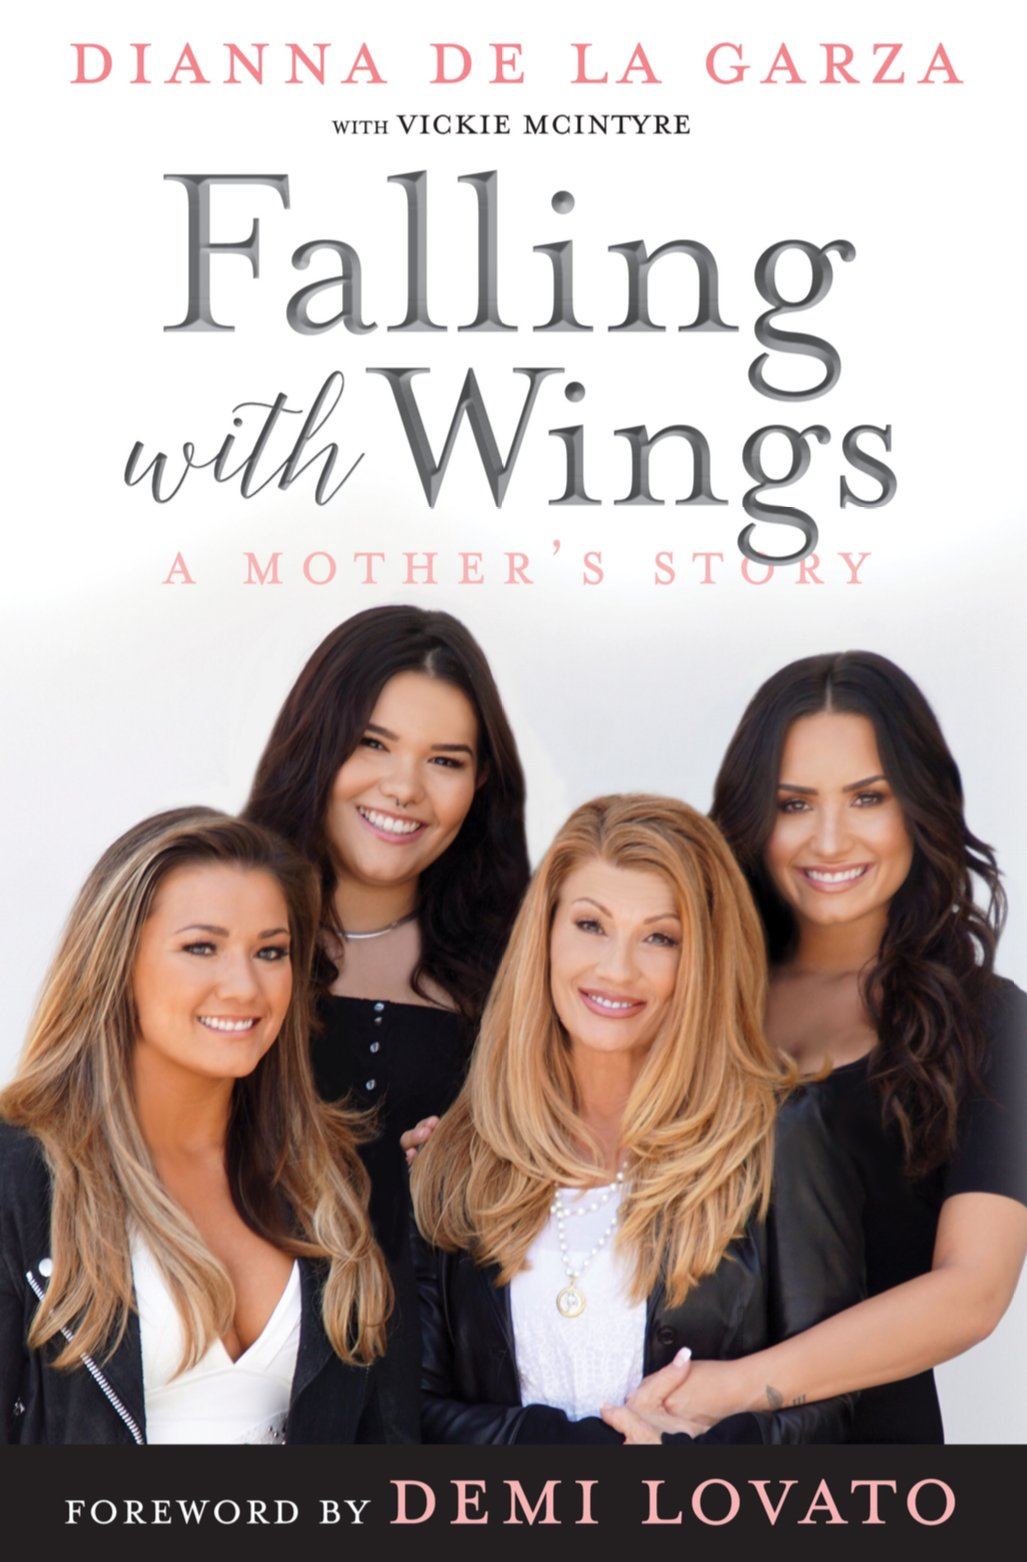 Congrats on your new book mom!!! So proud of you @DiannaDeLaGarza ������ #FallingWithWings https://t.co/DsUrXtb0KJ https://t.co/ZLqOCR6xgQ